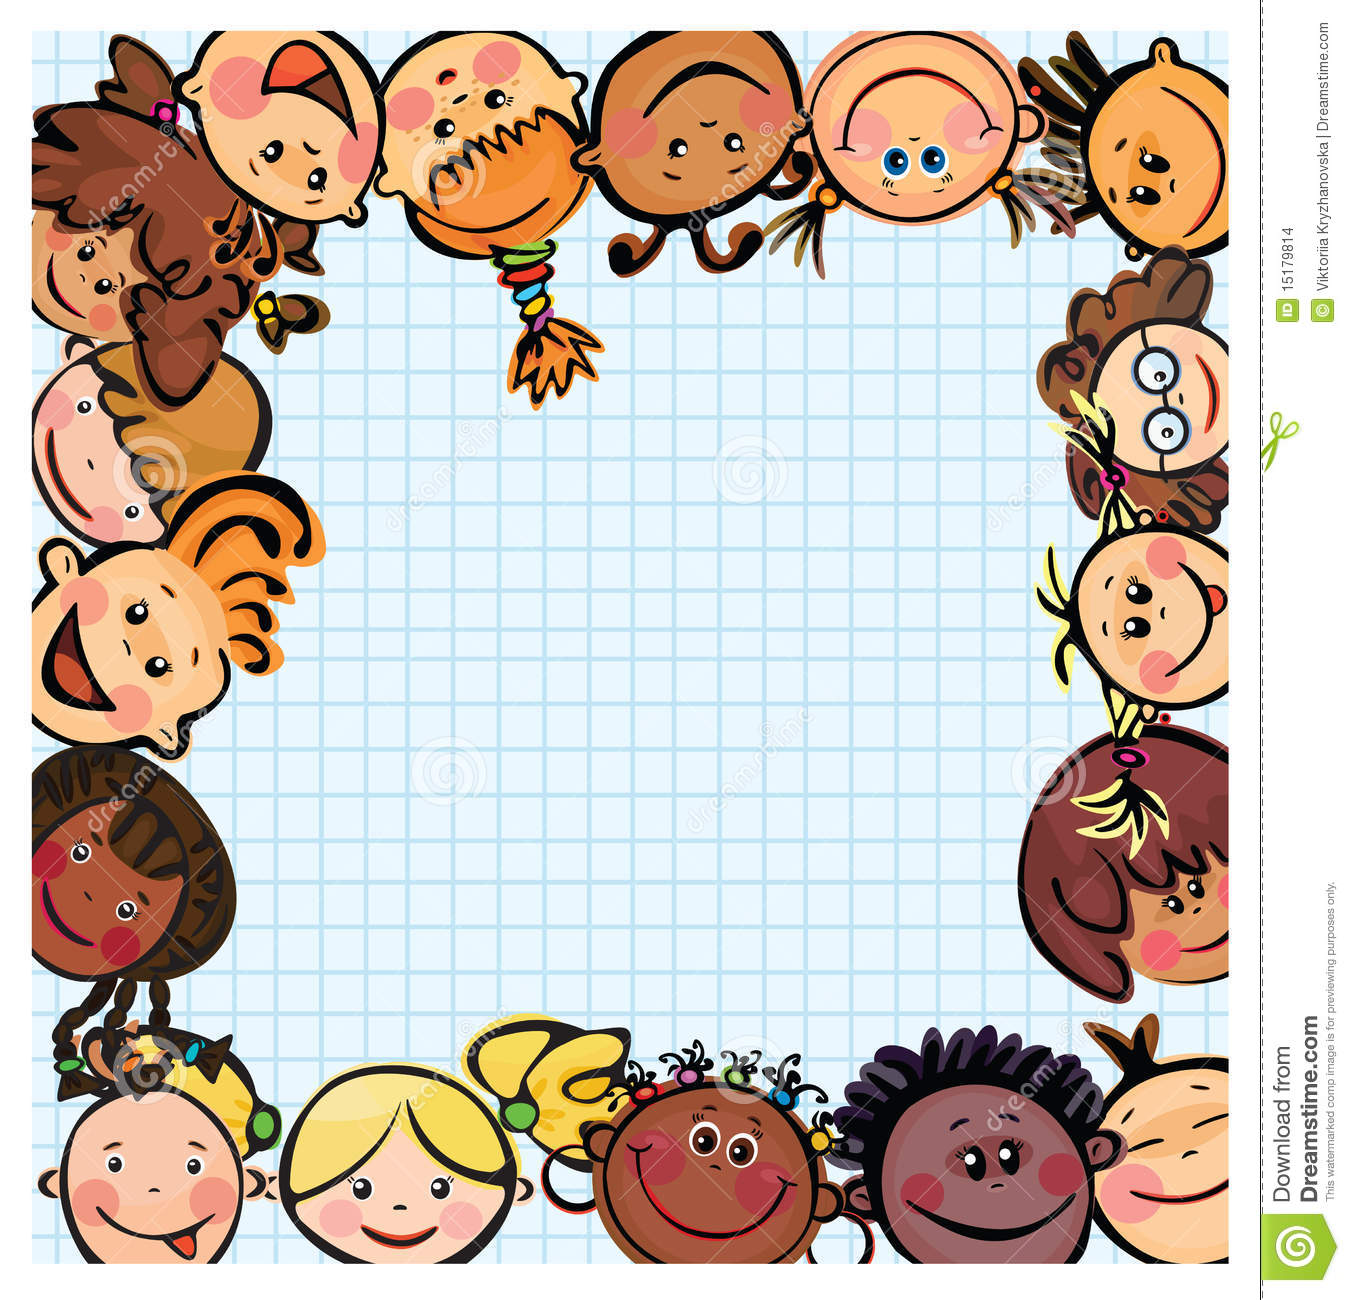 fun kids frame kids different races - Fun Kid Pictures